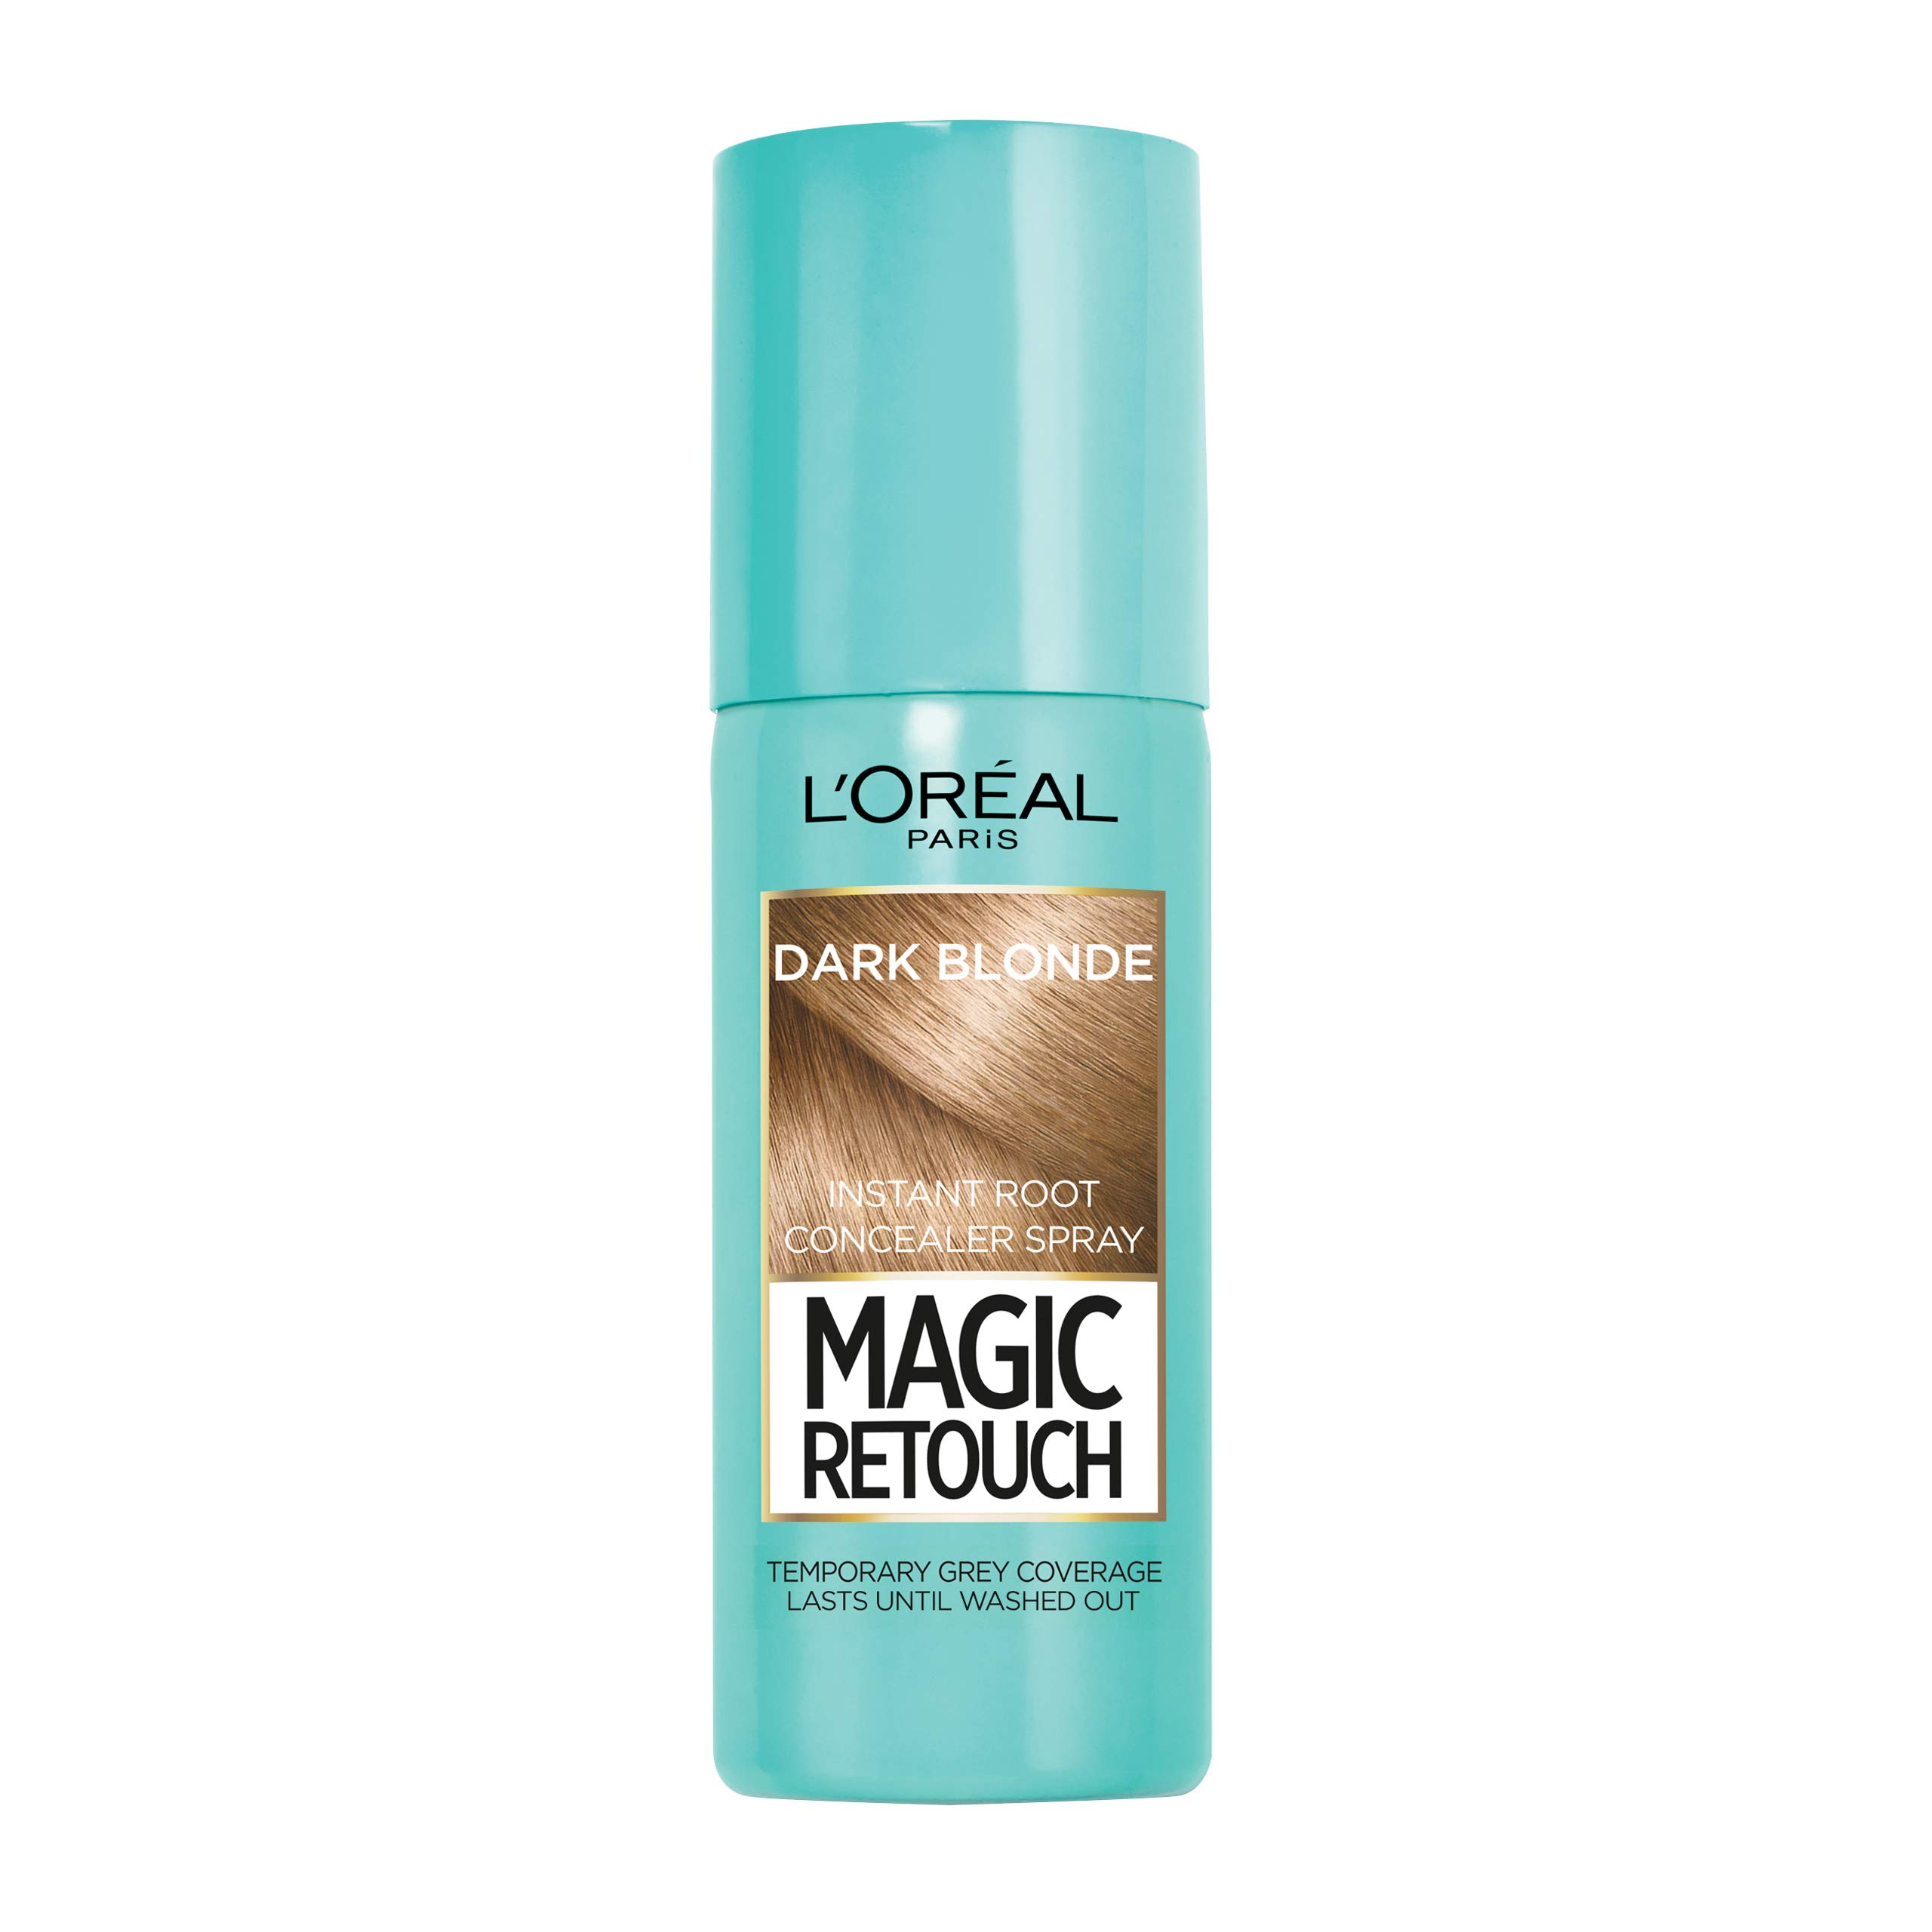 L'Oréal Magic Retouch Instant Root Concealer Spray, Ideal for Touching Up Grey Root Regrowth, 75 ml, Colour: Dark Blonde